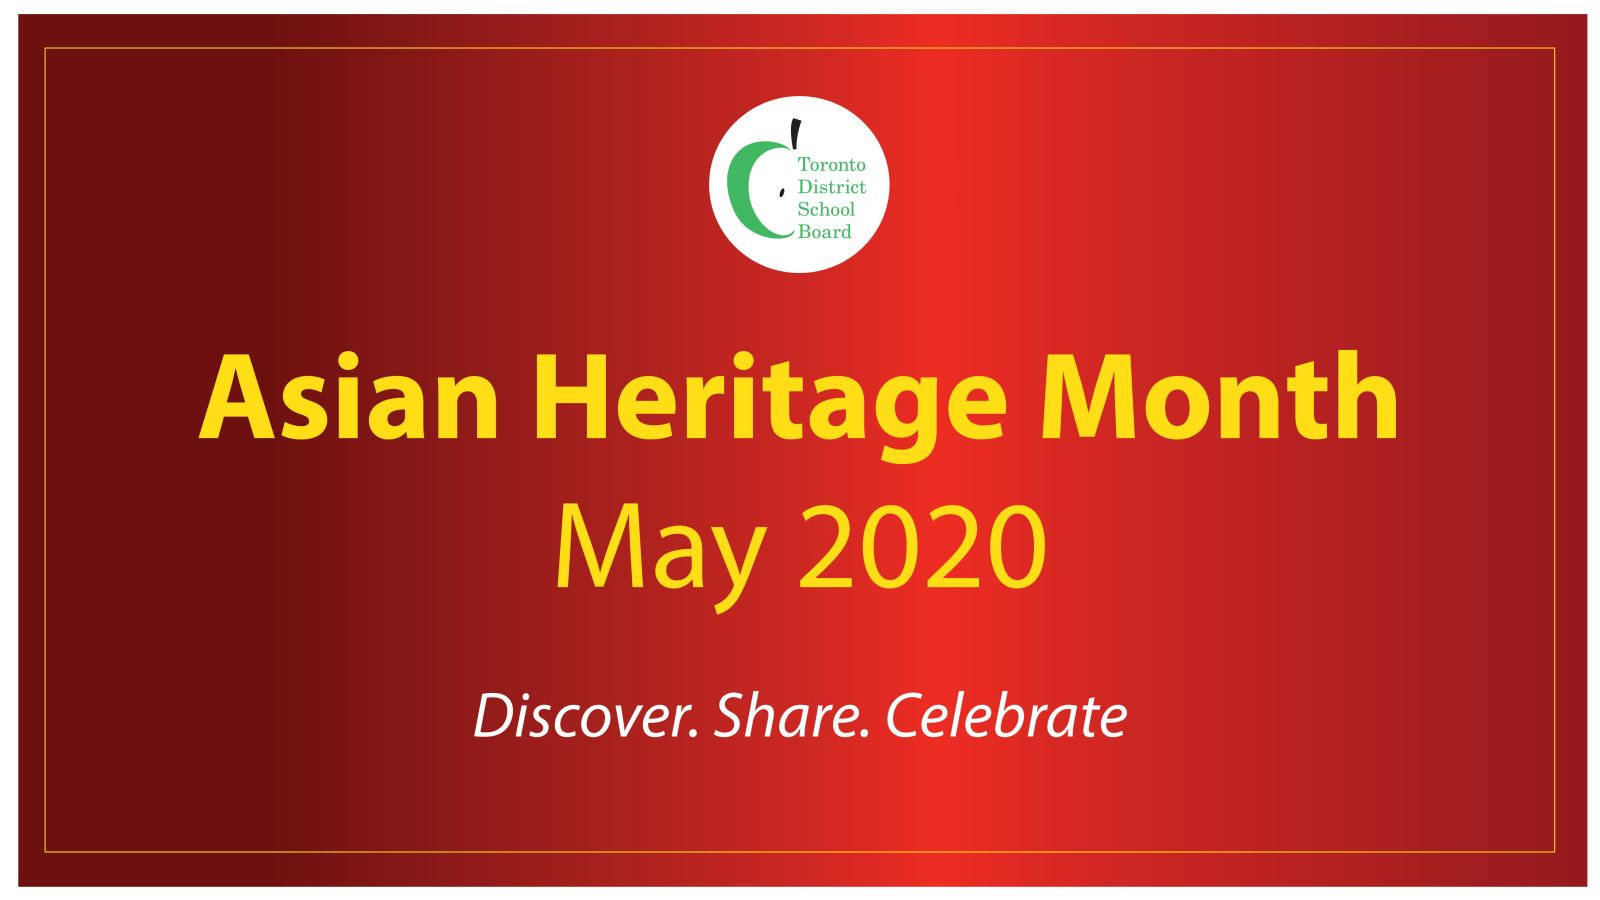 Asian Heritage Month 2020 notes theme of Discover, Share and Celebrate